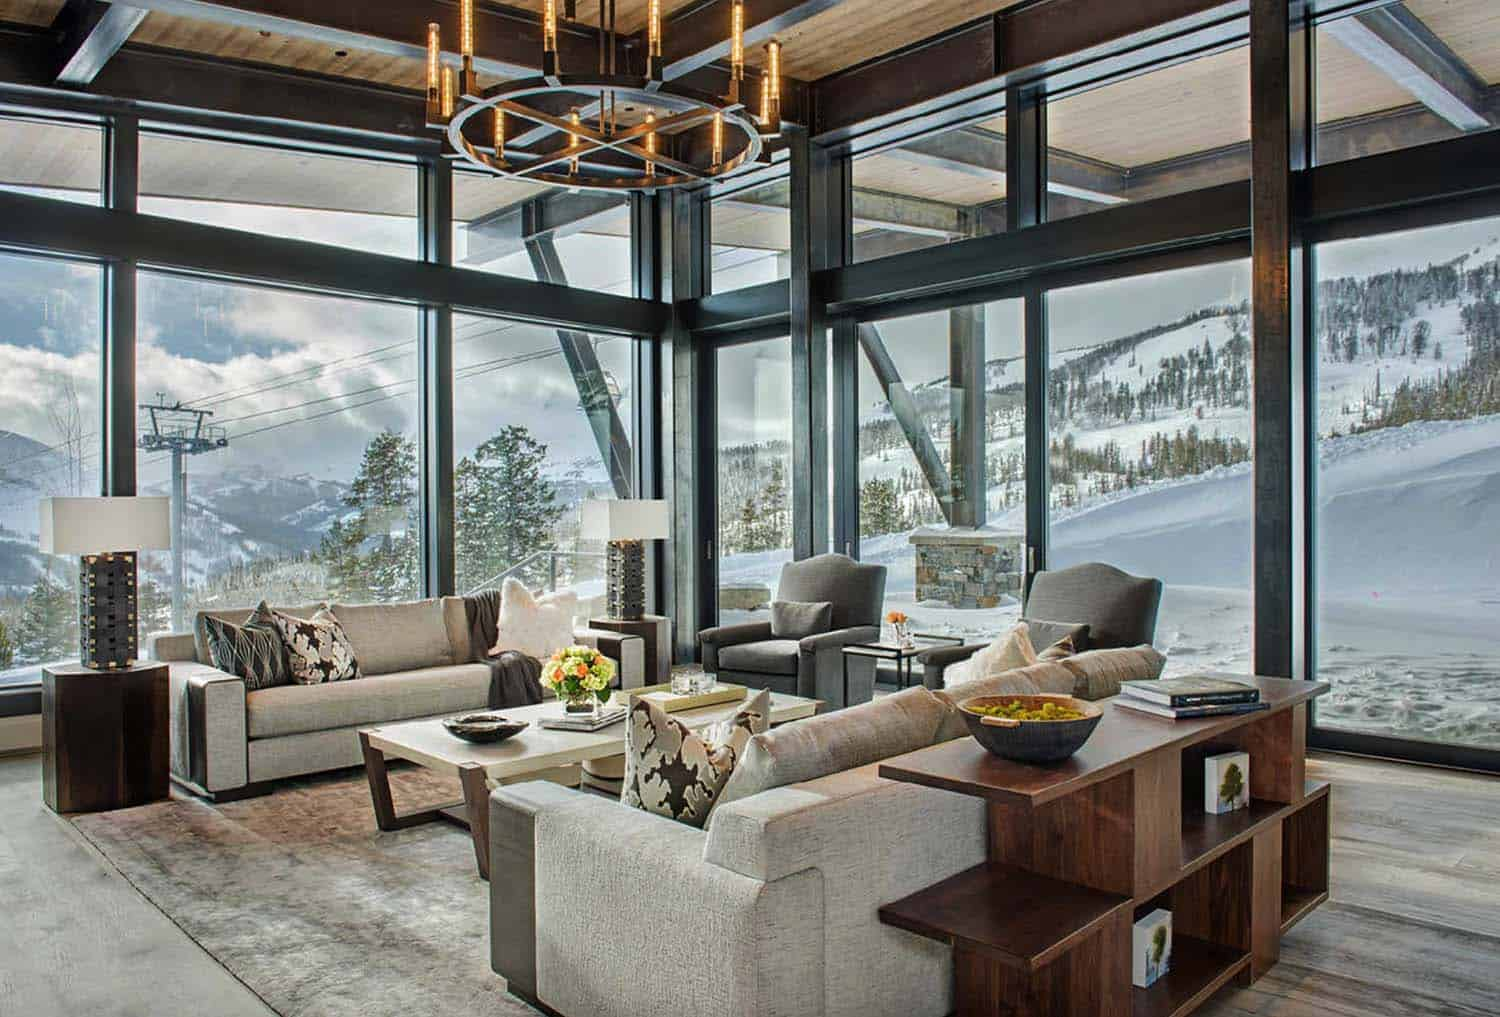 Modern-rustic mountain home with spectacular views in Big Sky country